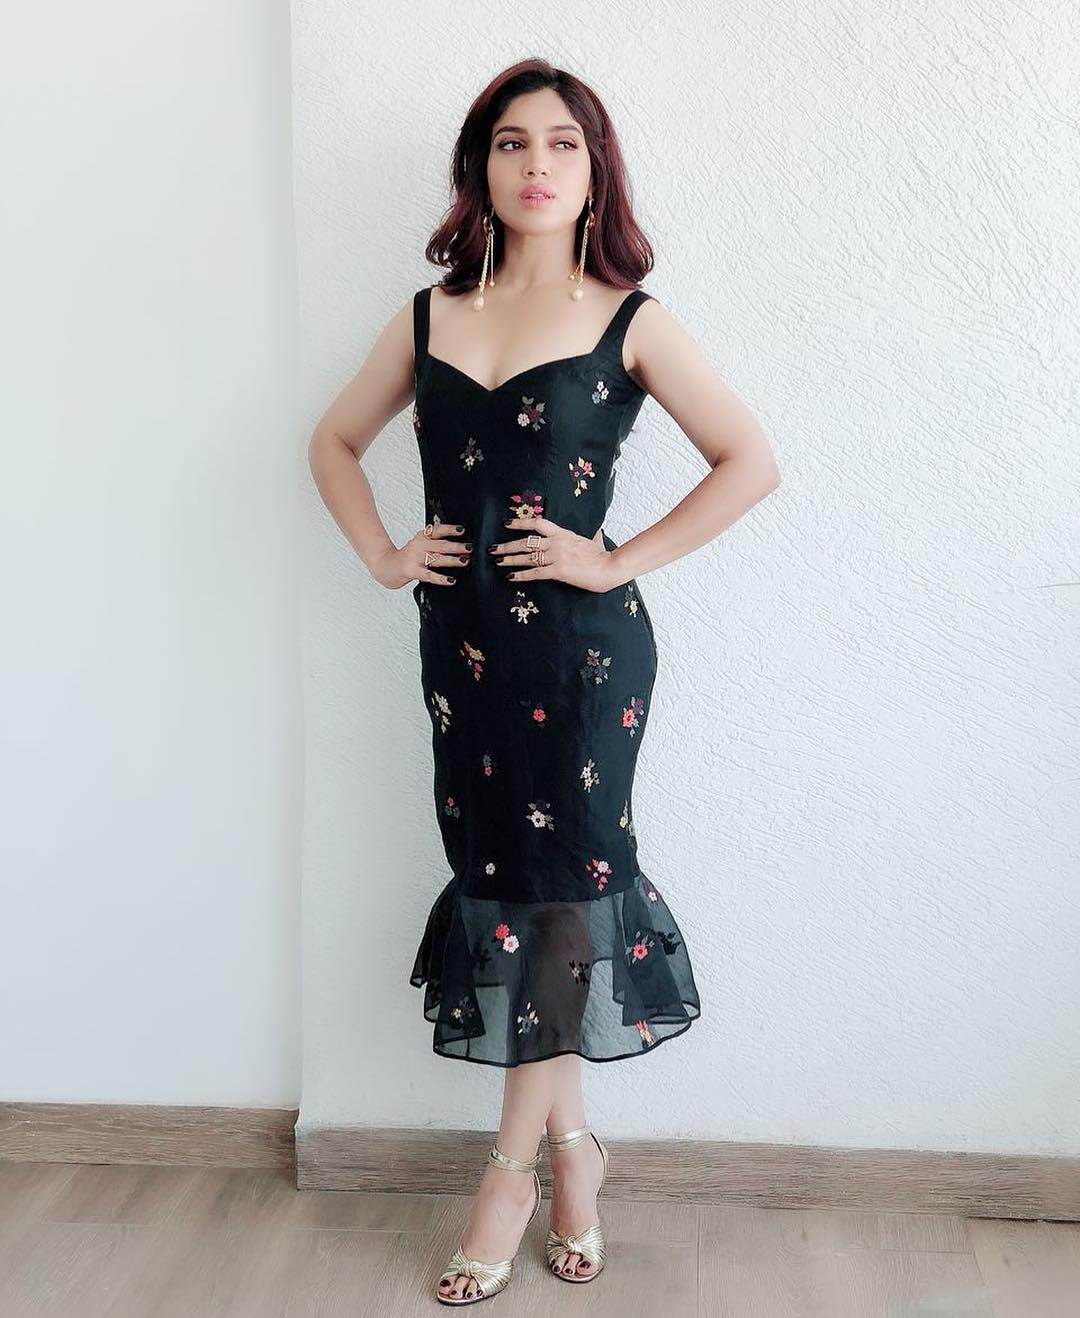 28 dresses - bhumi pednekar black midi dress